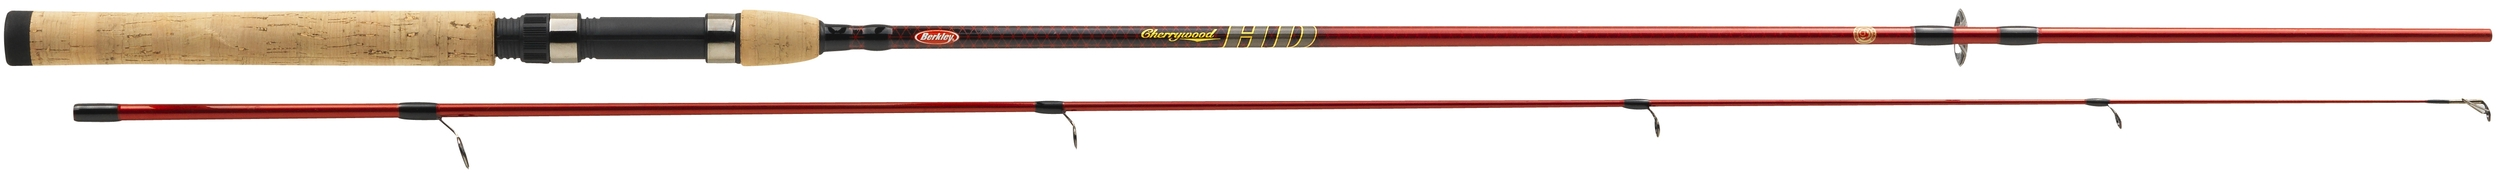 Спиннинг Berkley Cherrywood HD Spin 2.02m/2 5-15gr